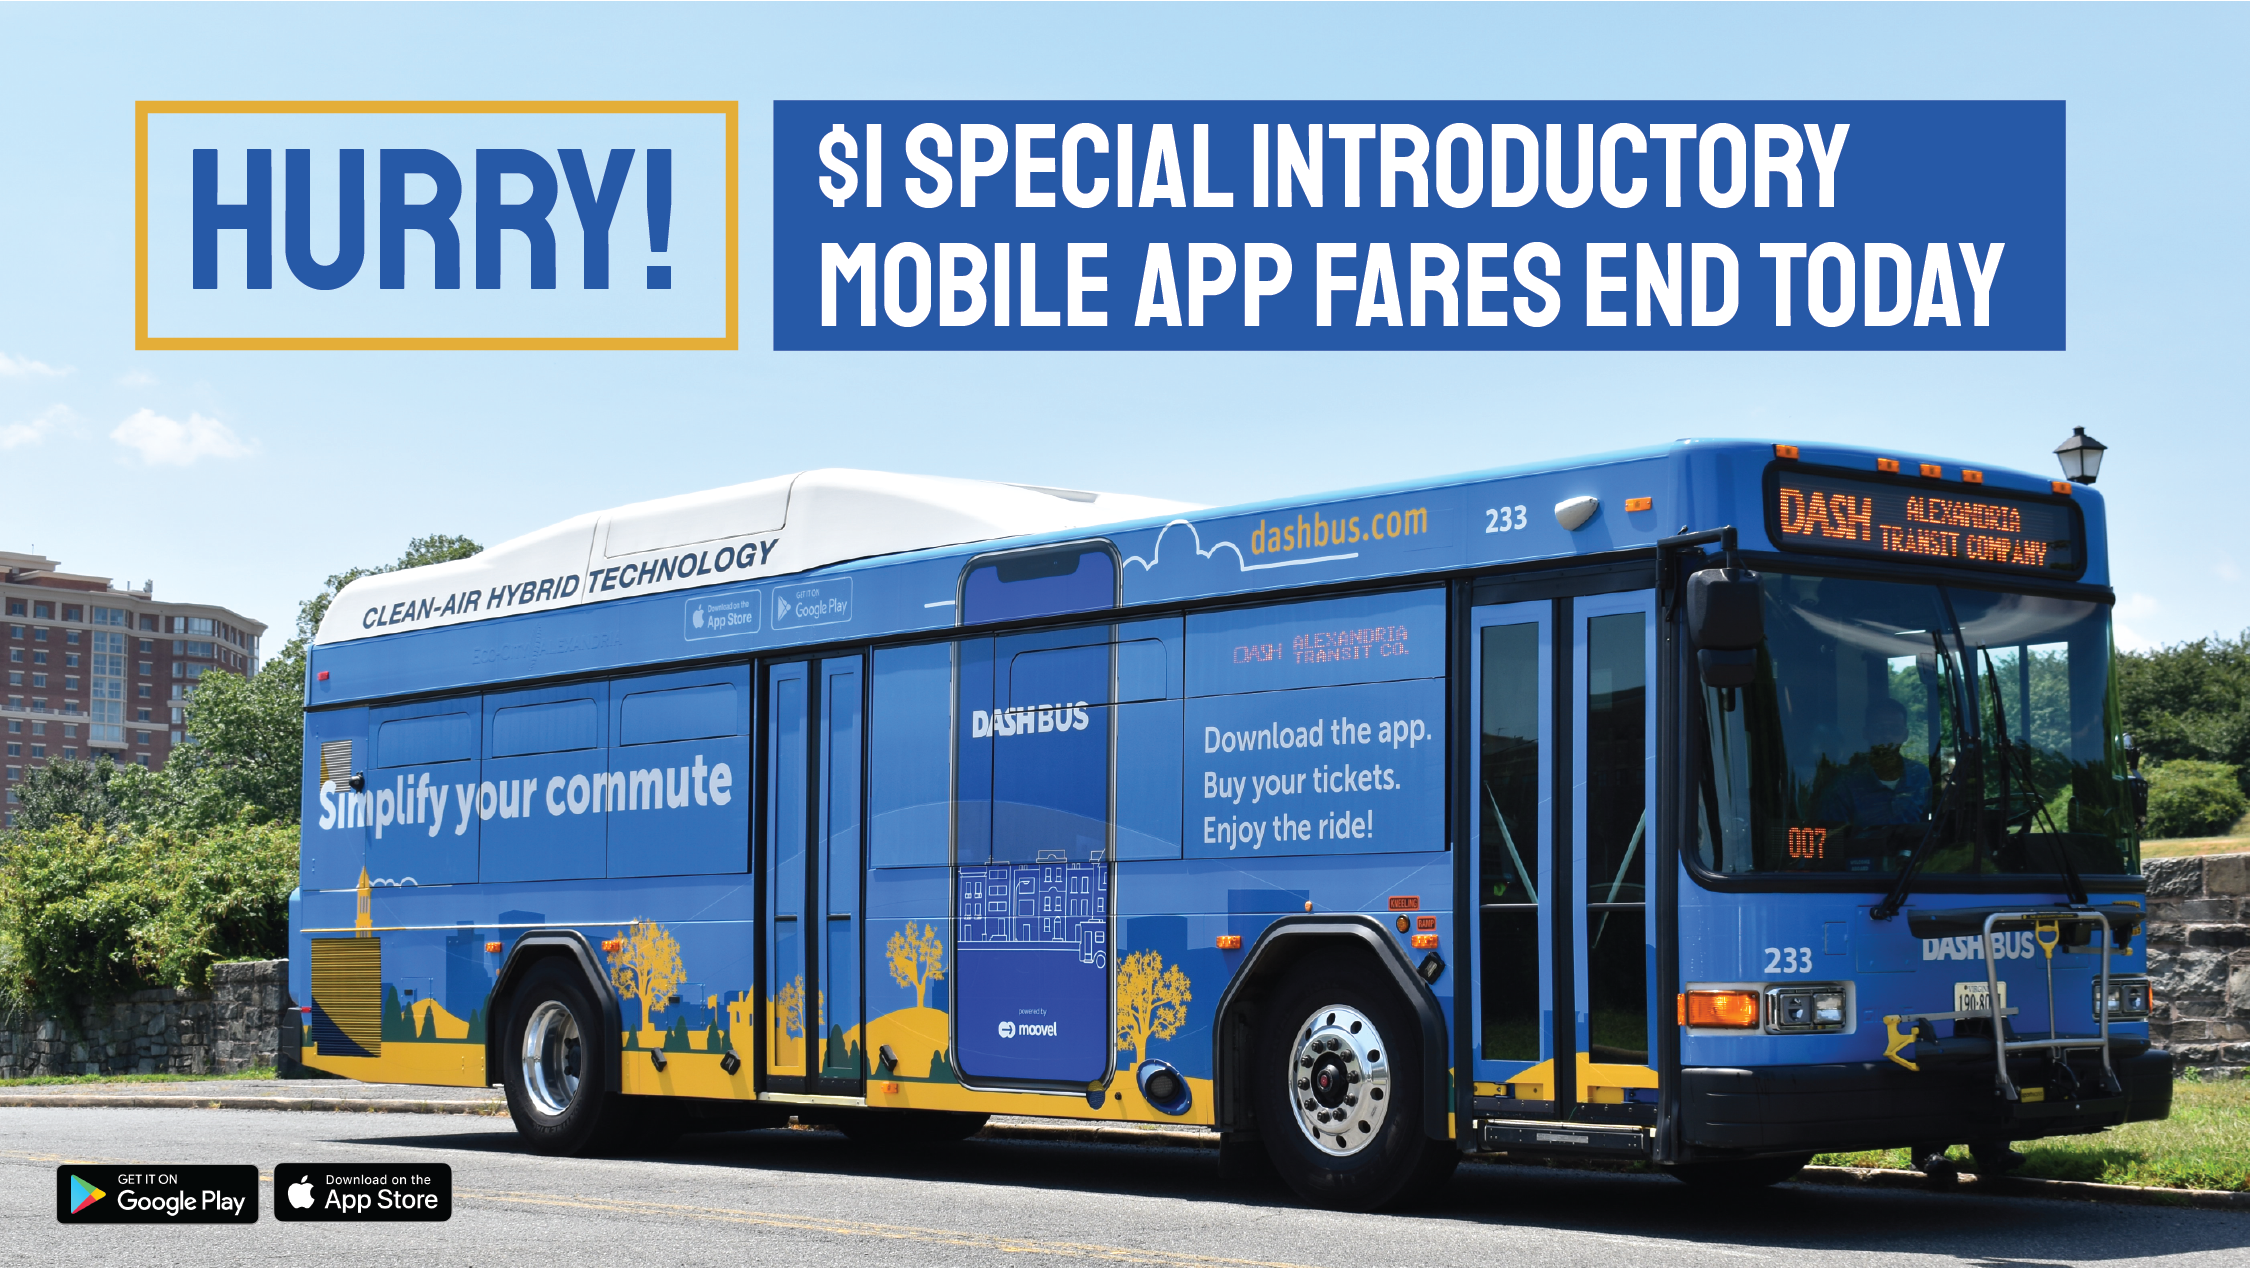 Mobile App wrapped bus with text saying: $1 DASH Bus mobile app fares are coming to an end today at midnight! Take advantage of this low introductory fare.